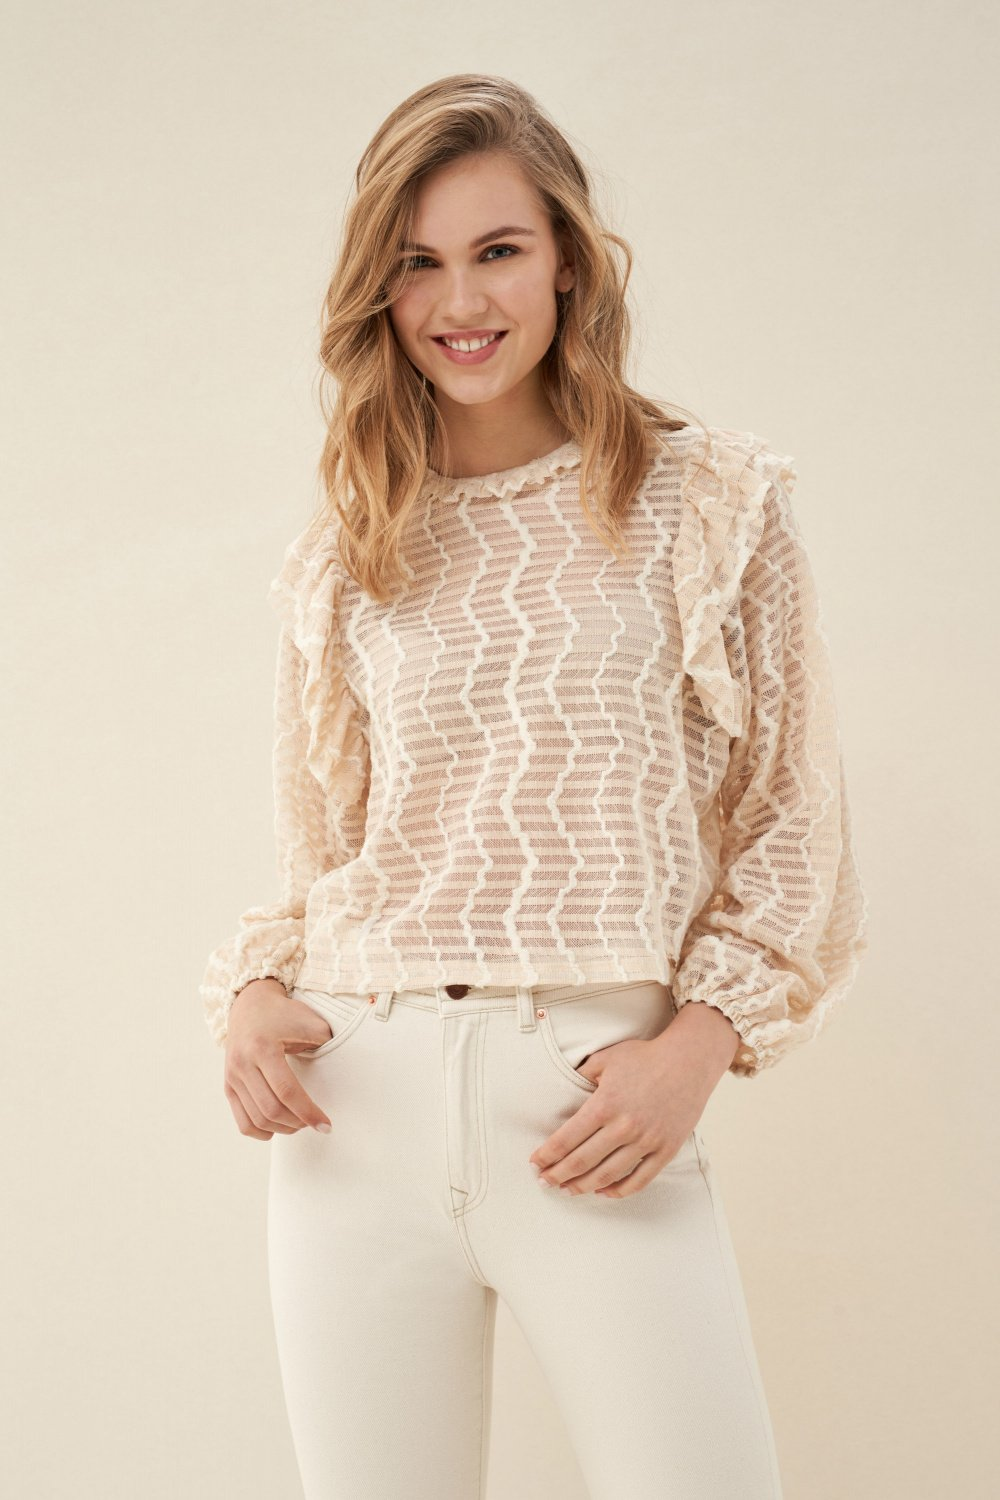 Lace blouse - Salsa